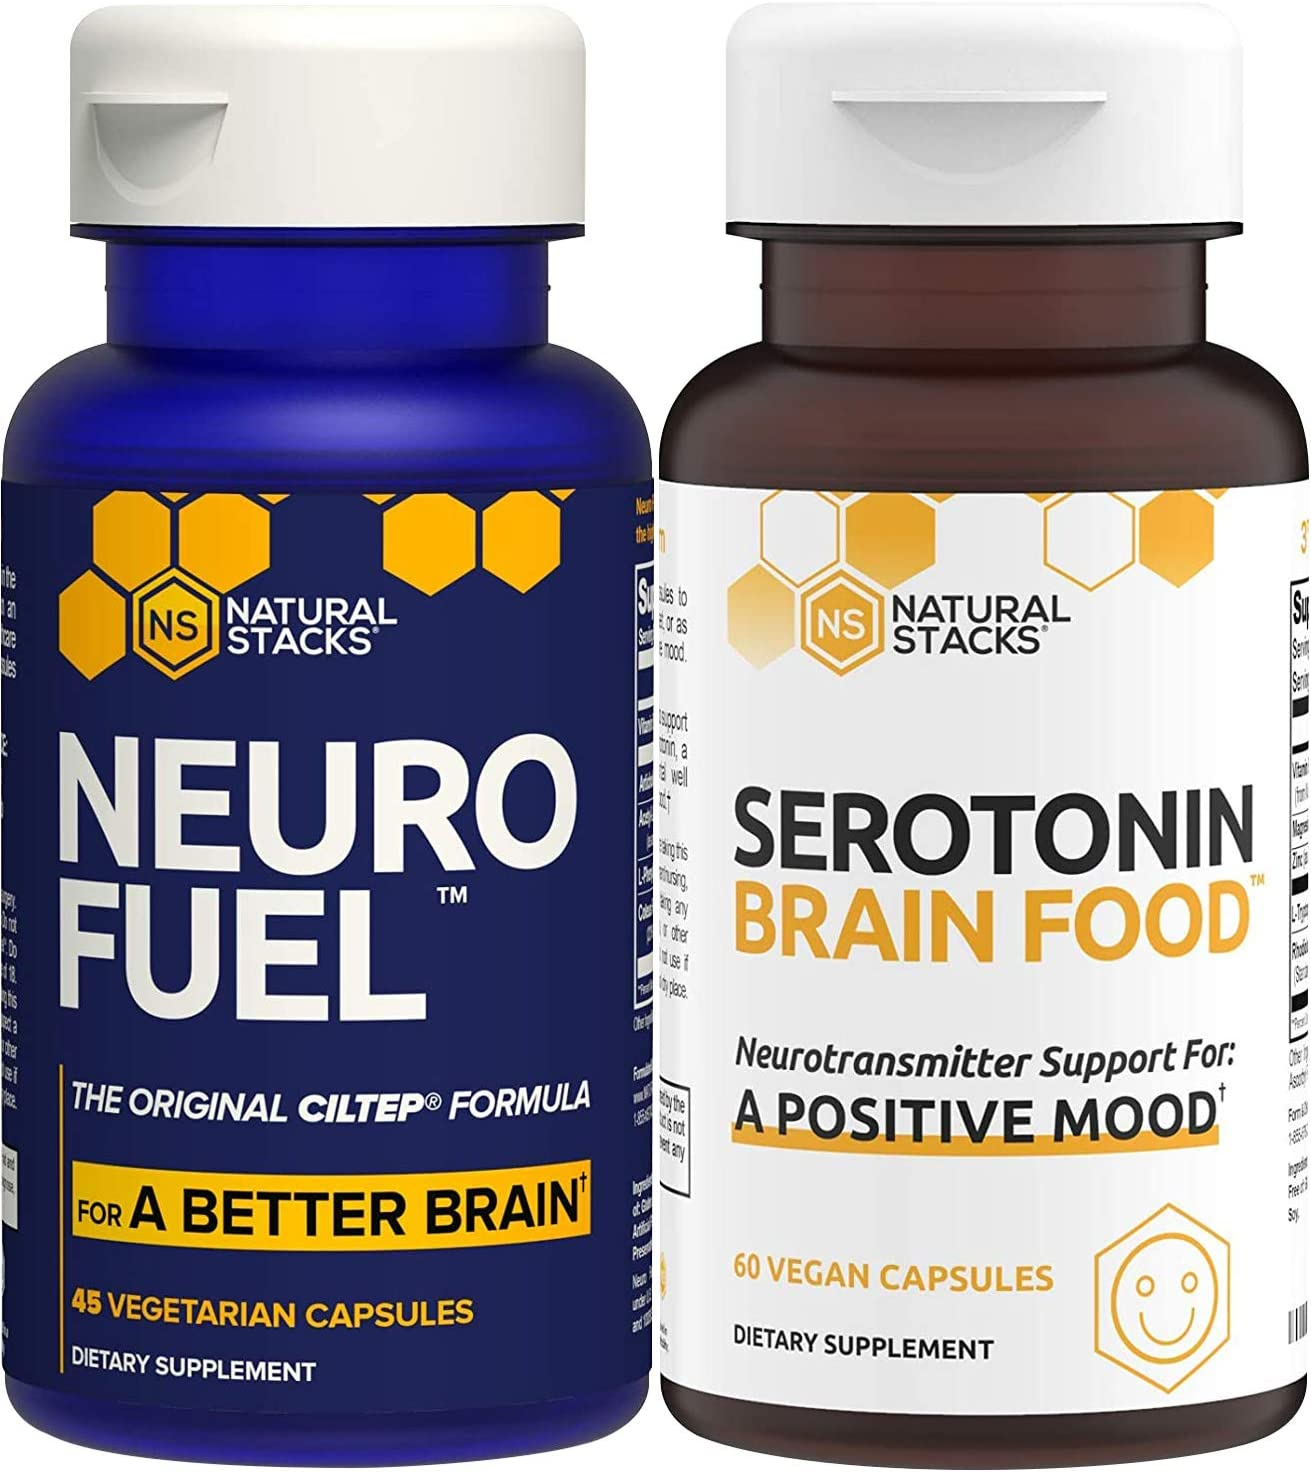 Natural Stacks Supplements Bundle - NeuroFuel Brain Supplement (45ct) and Serotonin Brain Food (60ct) - Improved Focus, Memory and Motivation, Better Mood and Relaxation